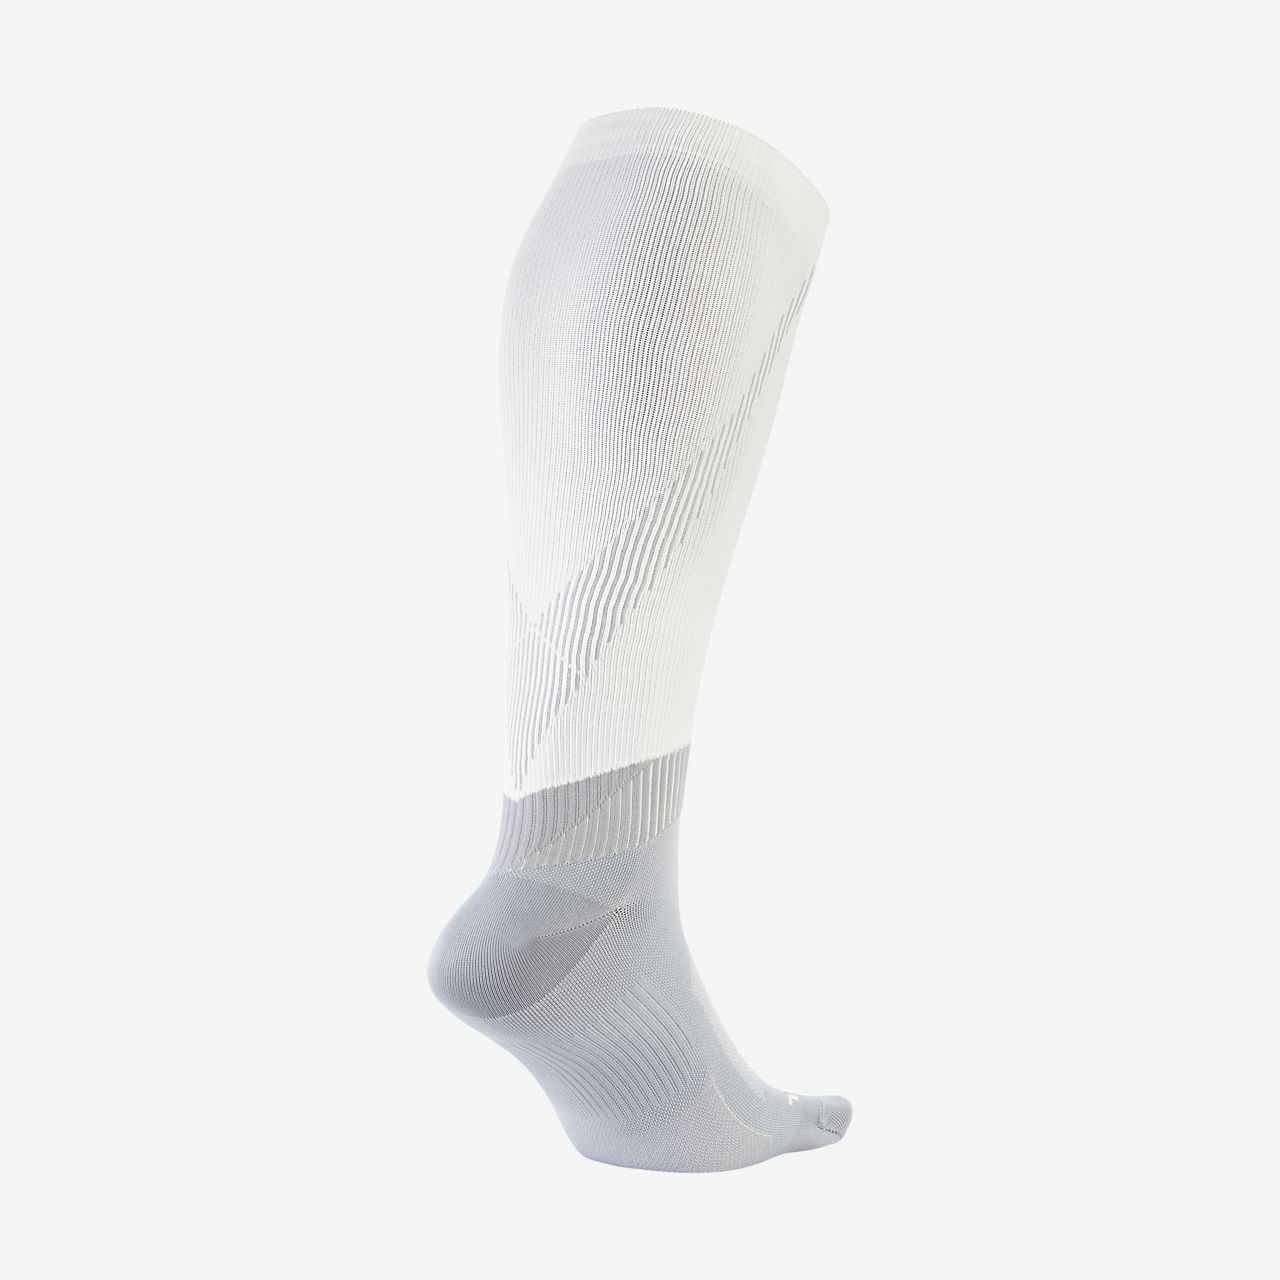 Meias de running Nike Elite Over-The-Calf